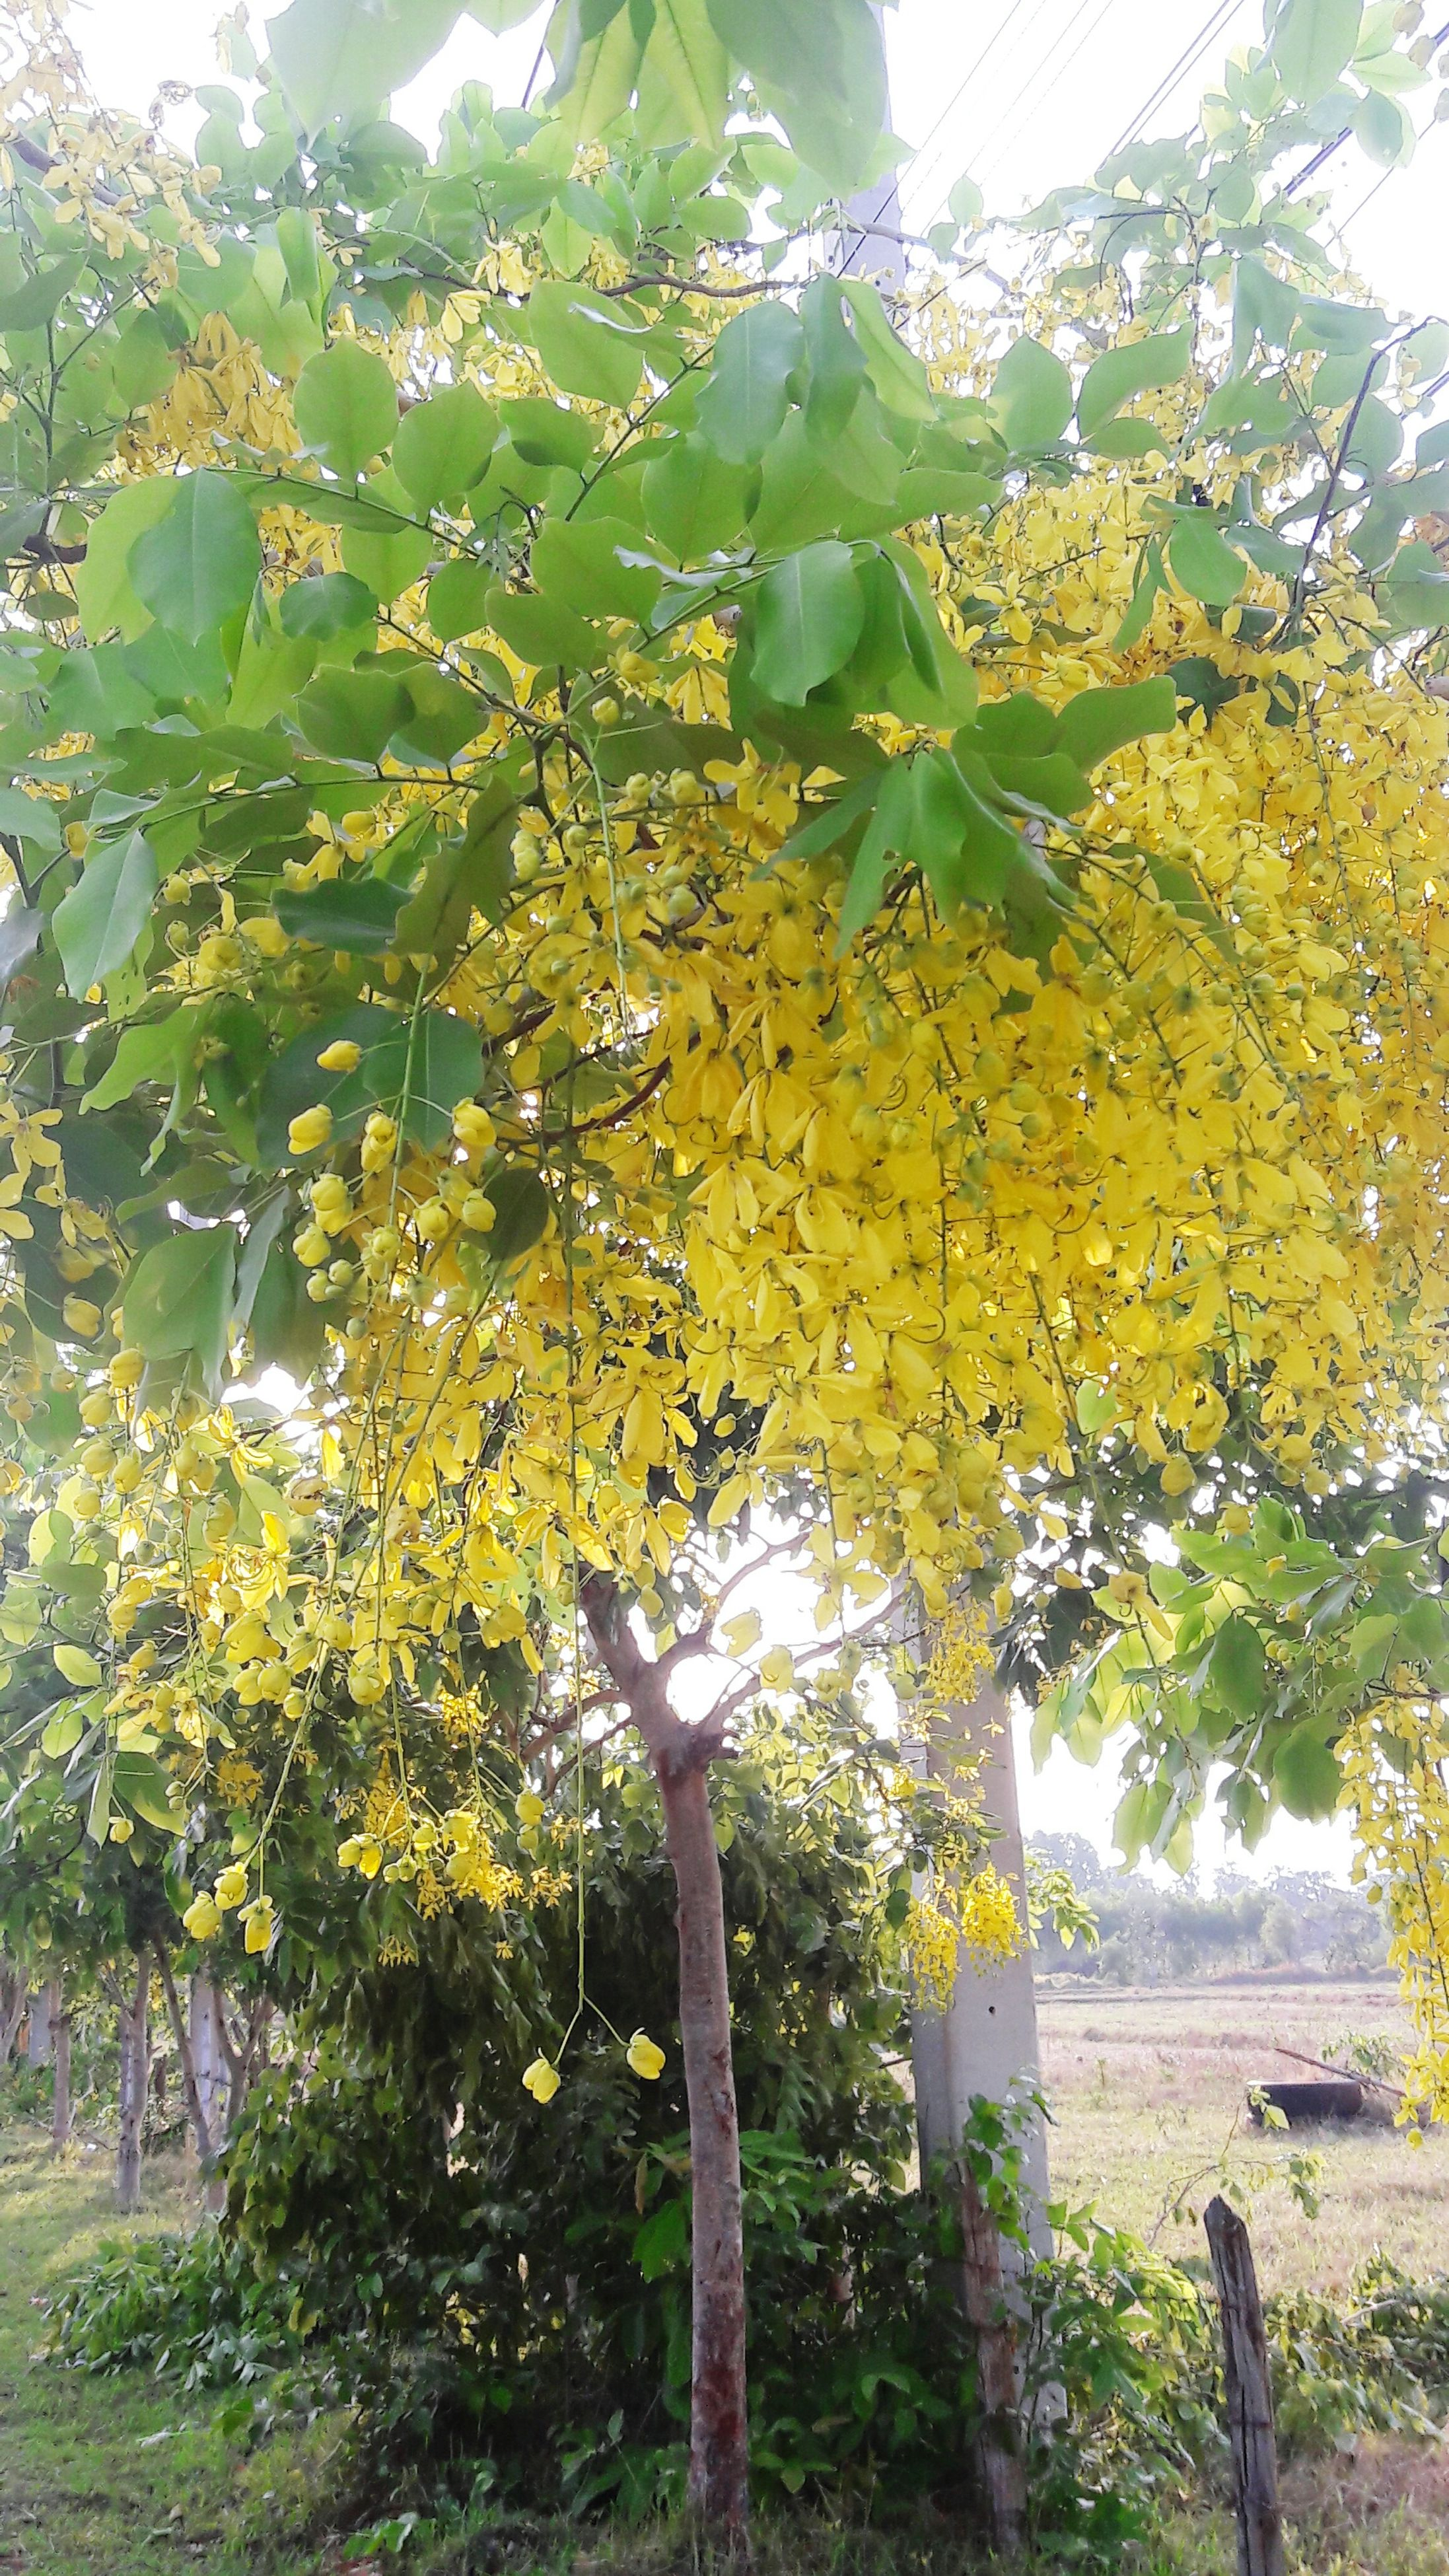 tree, growth, yellow, plant, built structure, nature, flower, building exterior, beauty in nature, architecture, leaf, branch, day, sky, freshness, green color, sunlight, growing, rural scene, outdoors